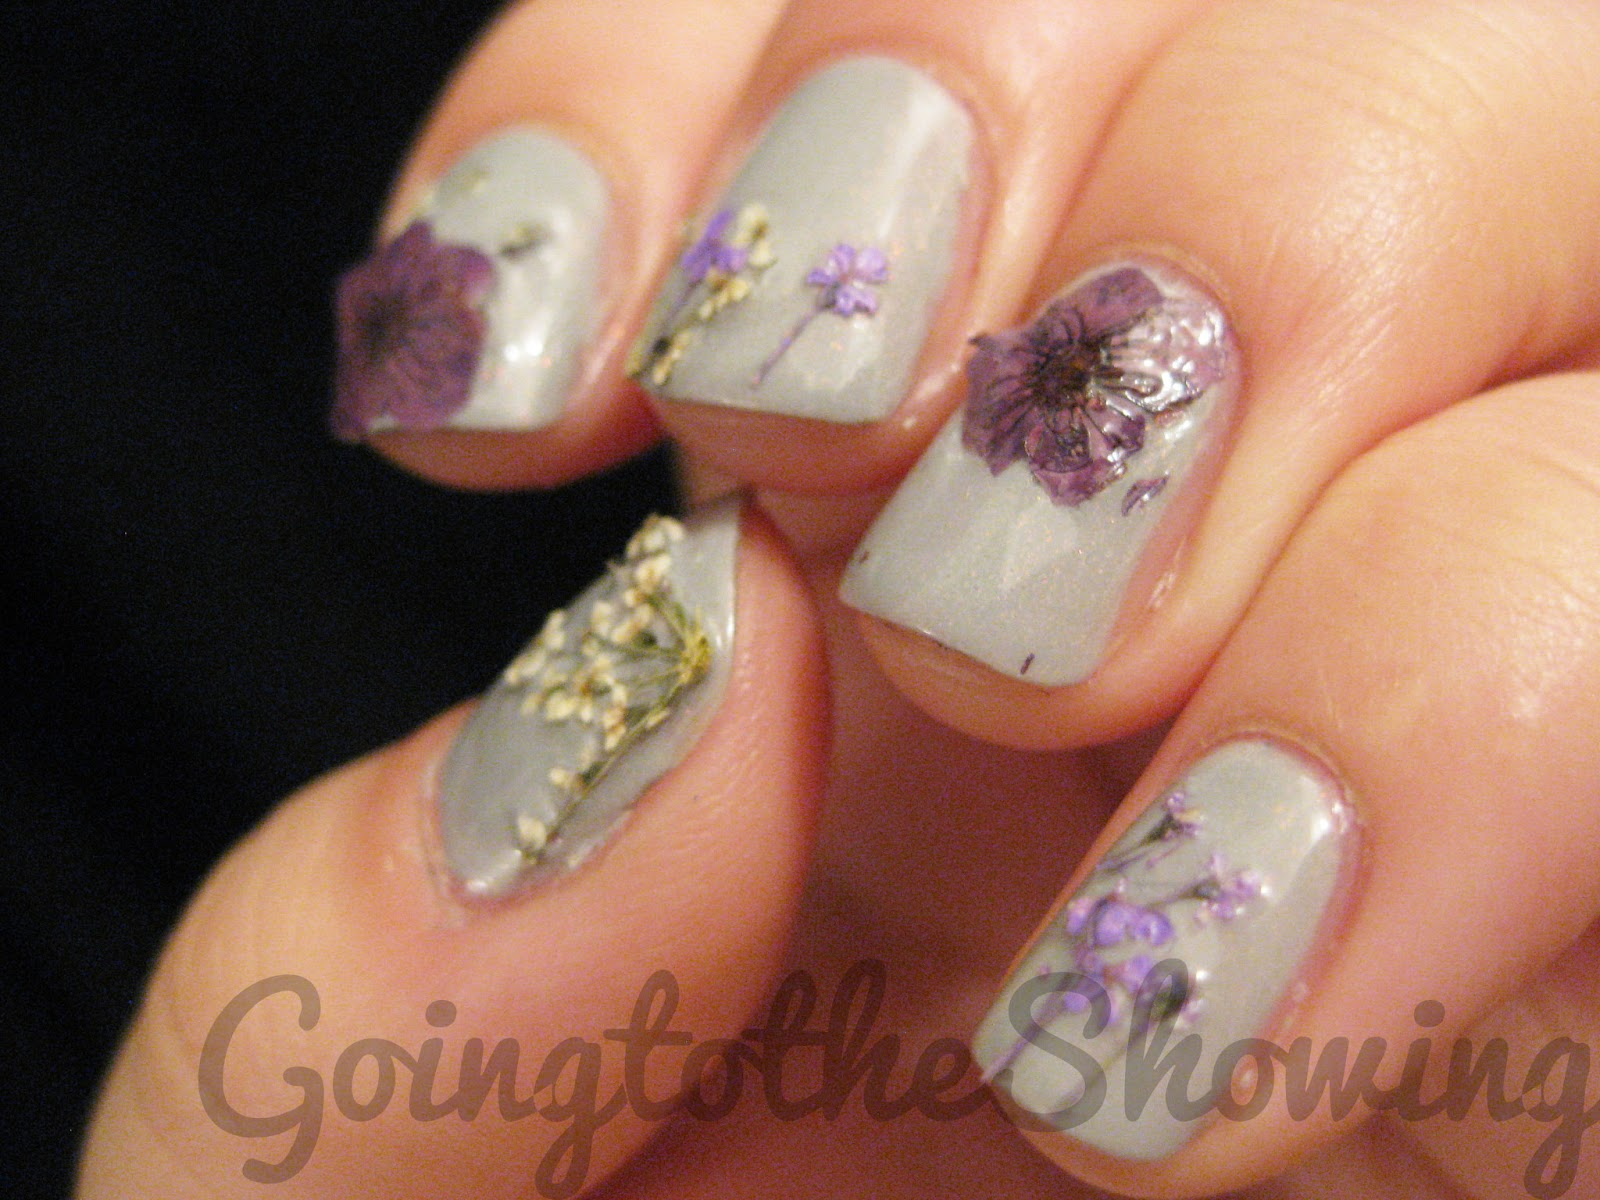 Born Pretty Store Dried Flower Nail Art Review ~ GOINGTOTHESHOWING